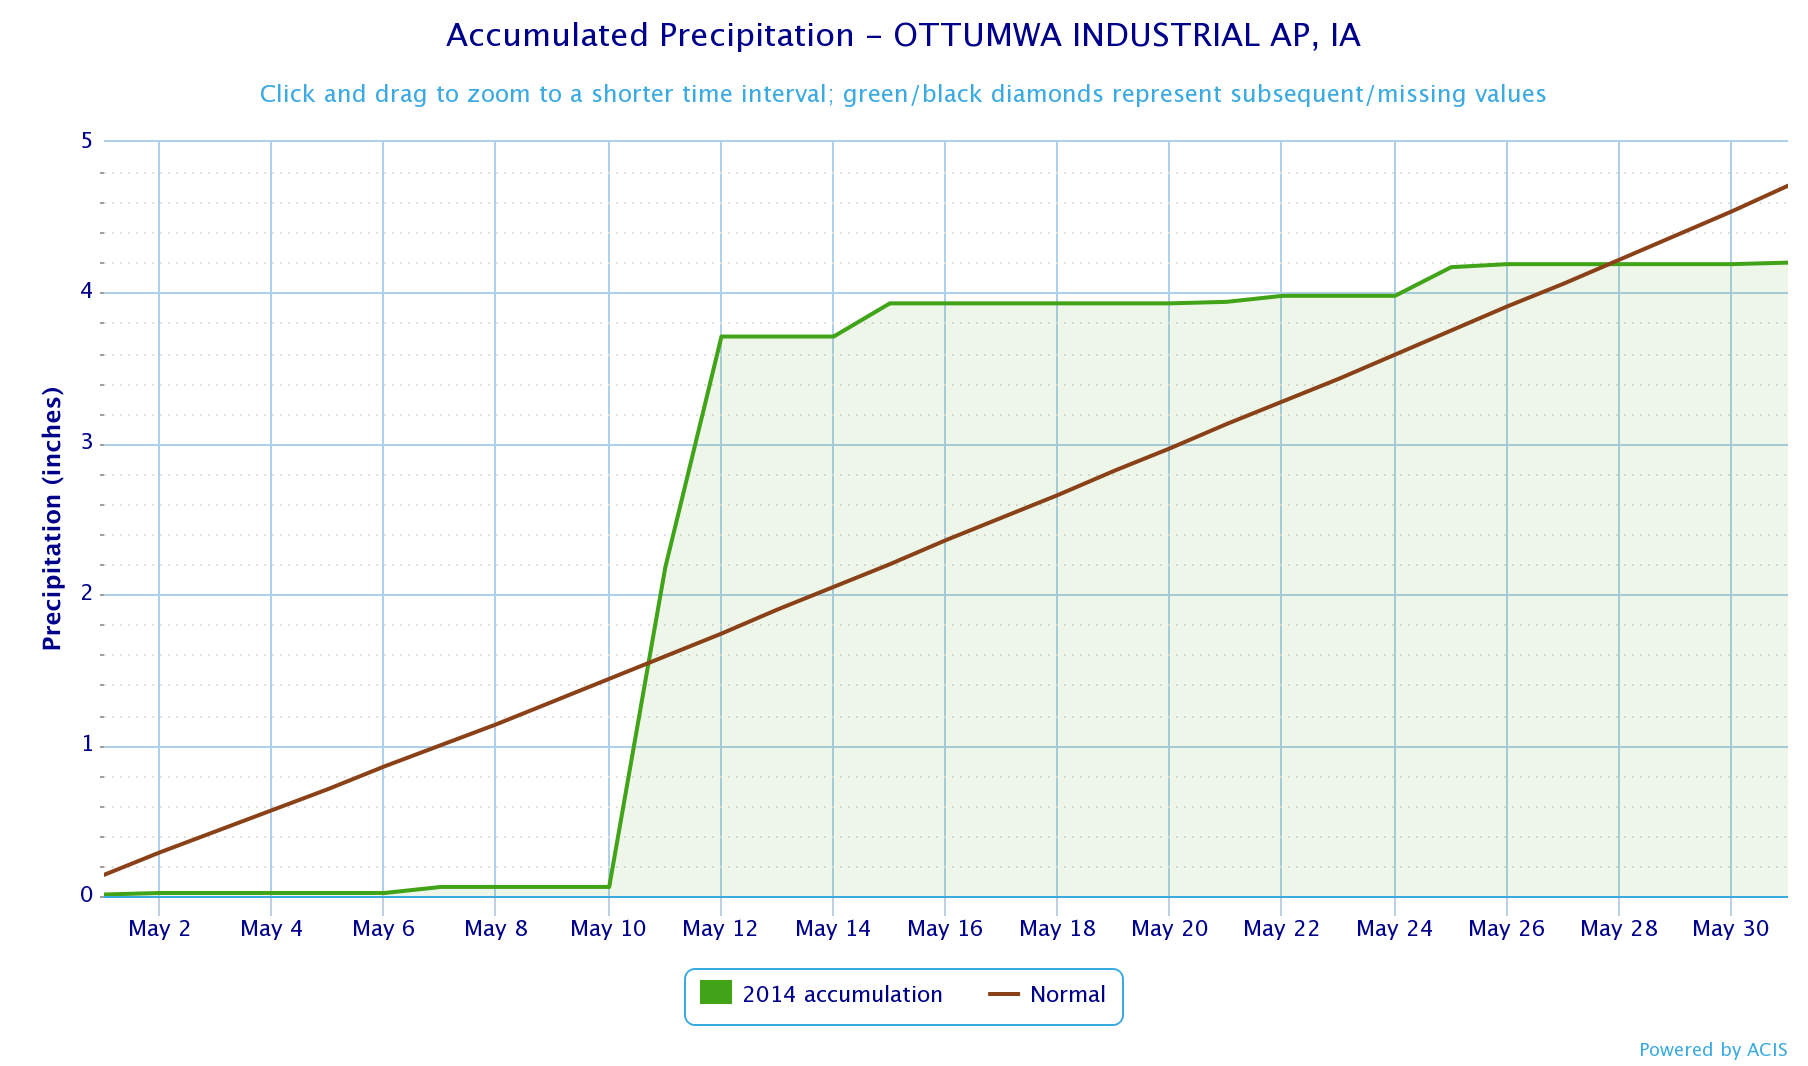 Figure 13: Precipitation trend for the month of May at Ottumwa shows the bulk of the rain fell on May 11 before an extended dry period towards the end of the month. The majority of central Iowa reporting stations' precipitation trend graphs were similar to this one.